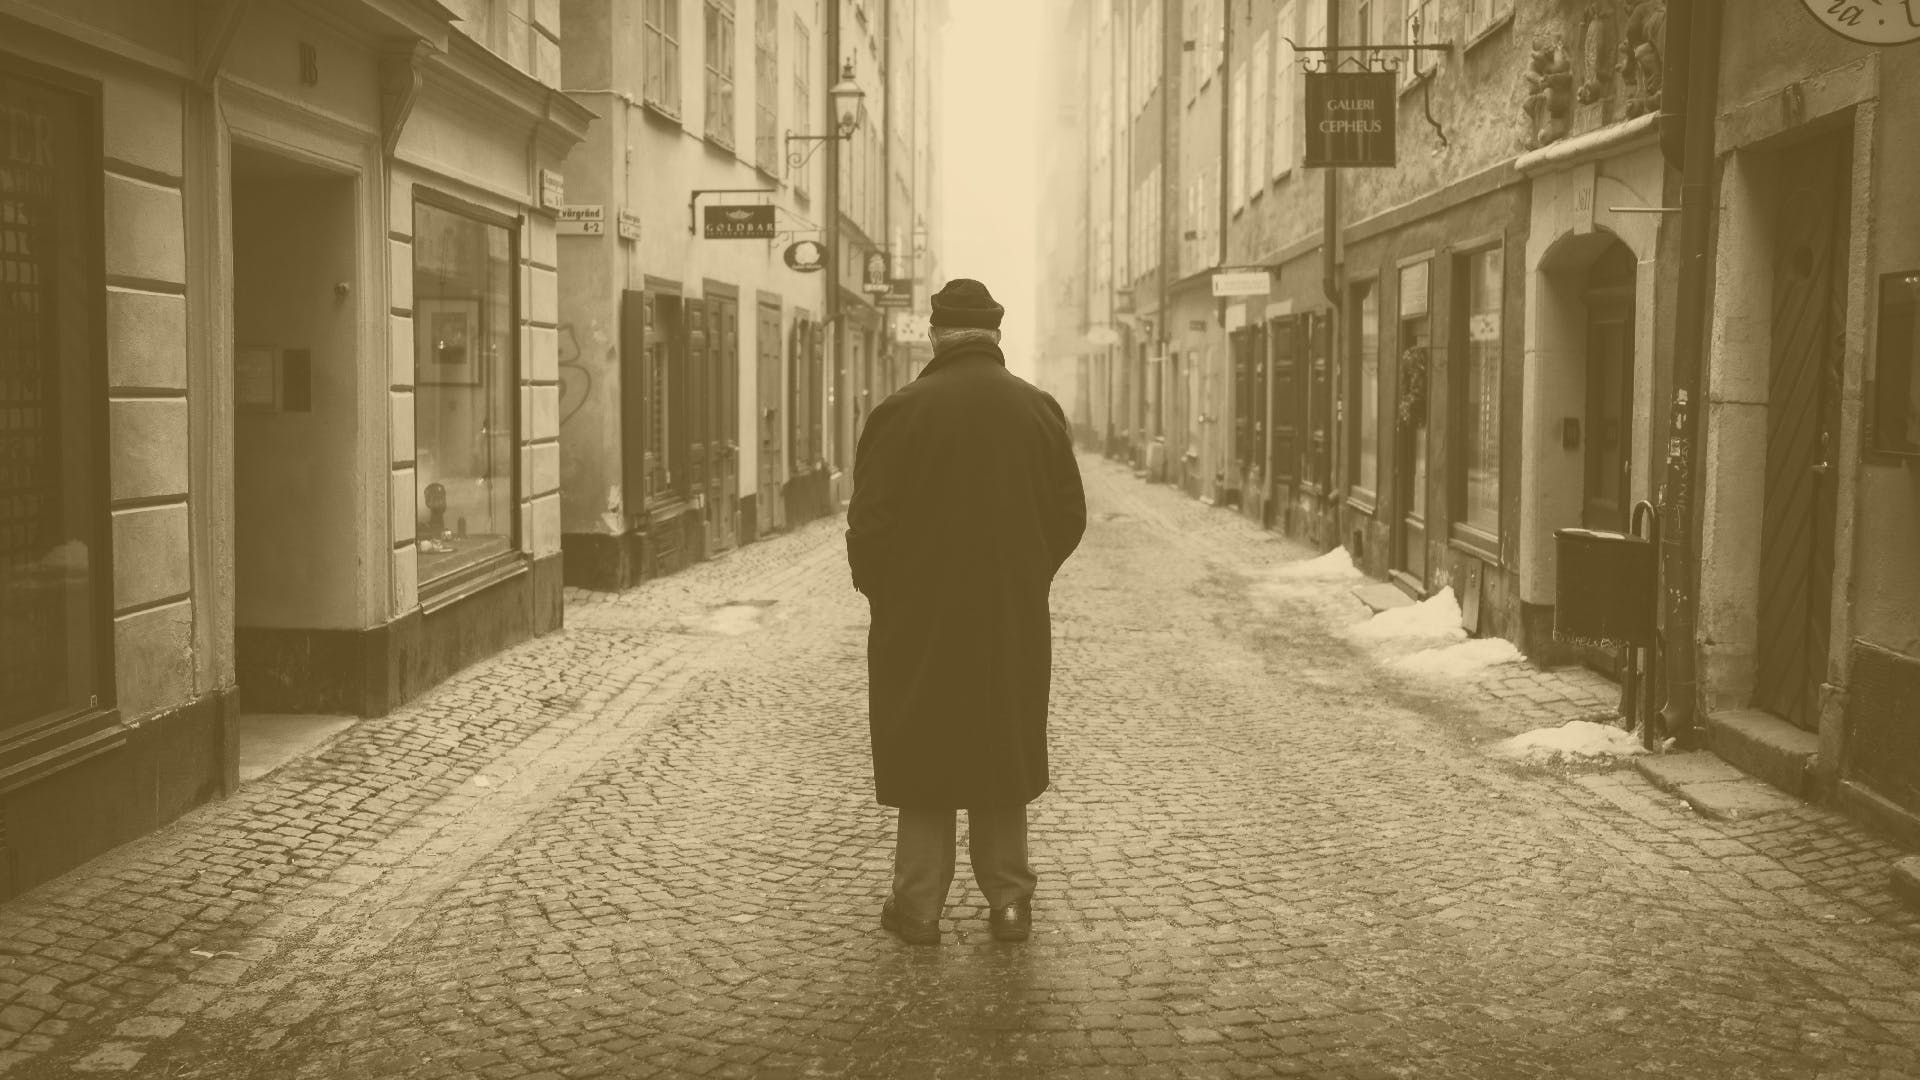 Rear View of a Man Walking on Cobblestone